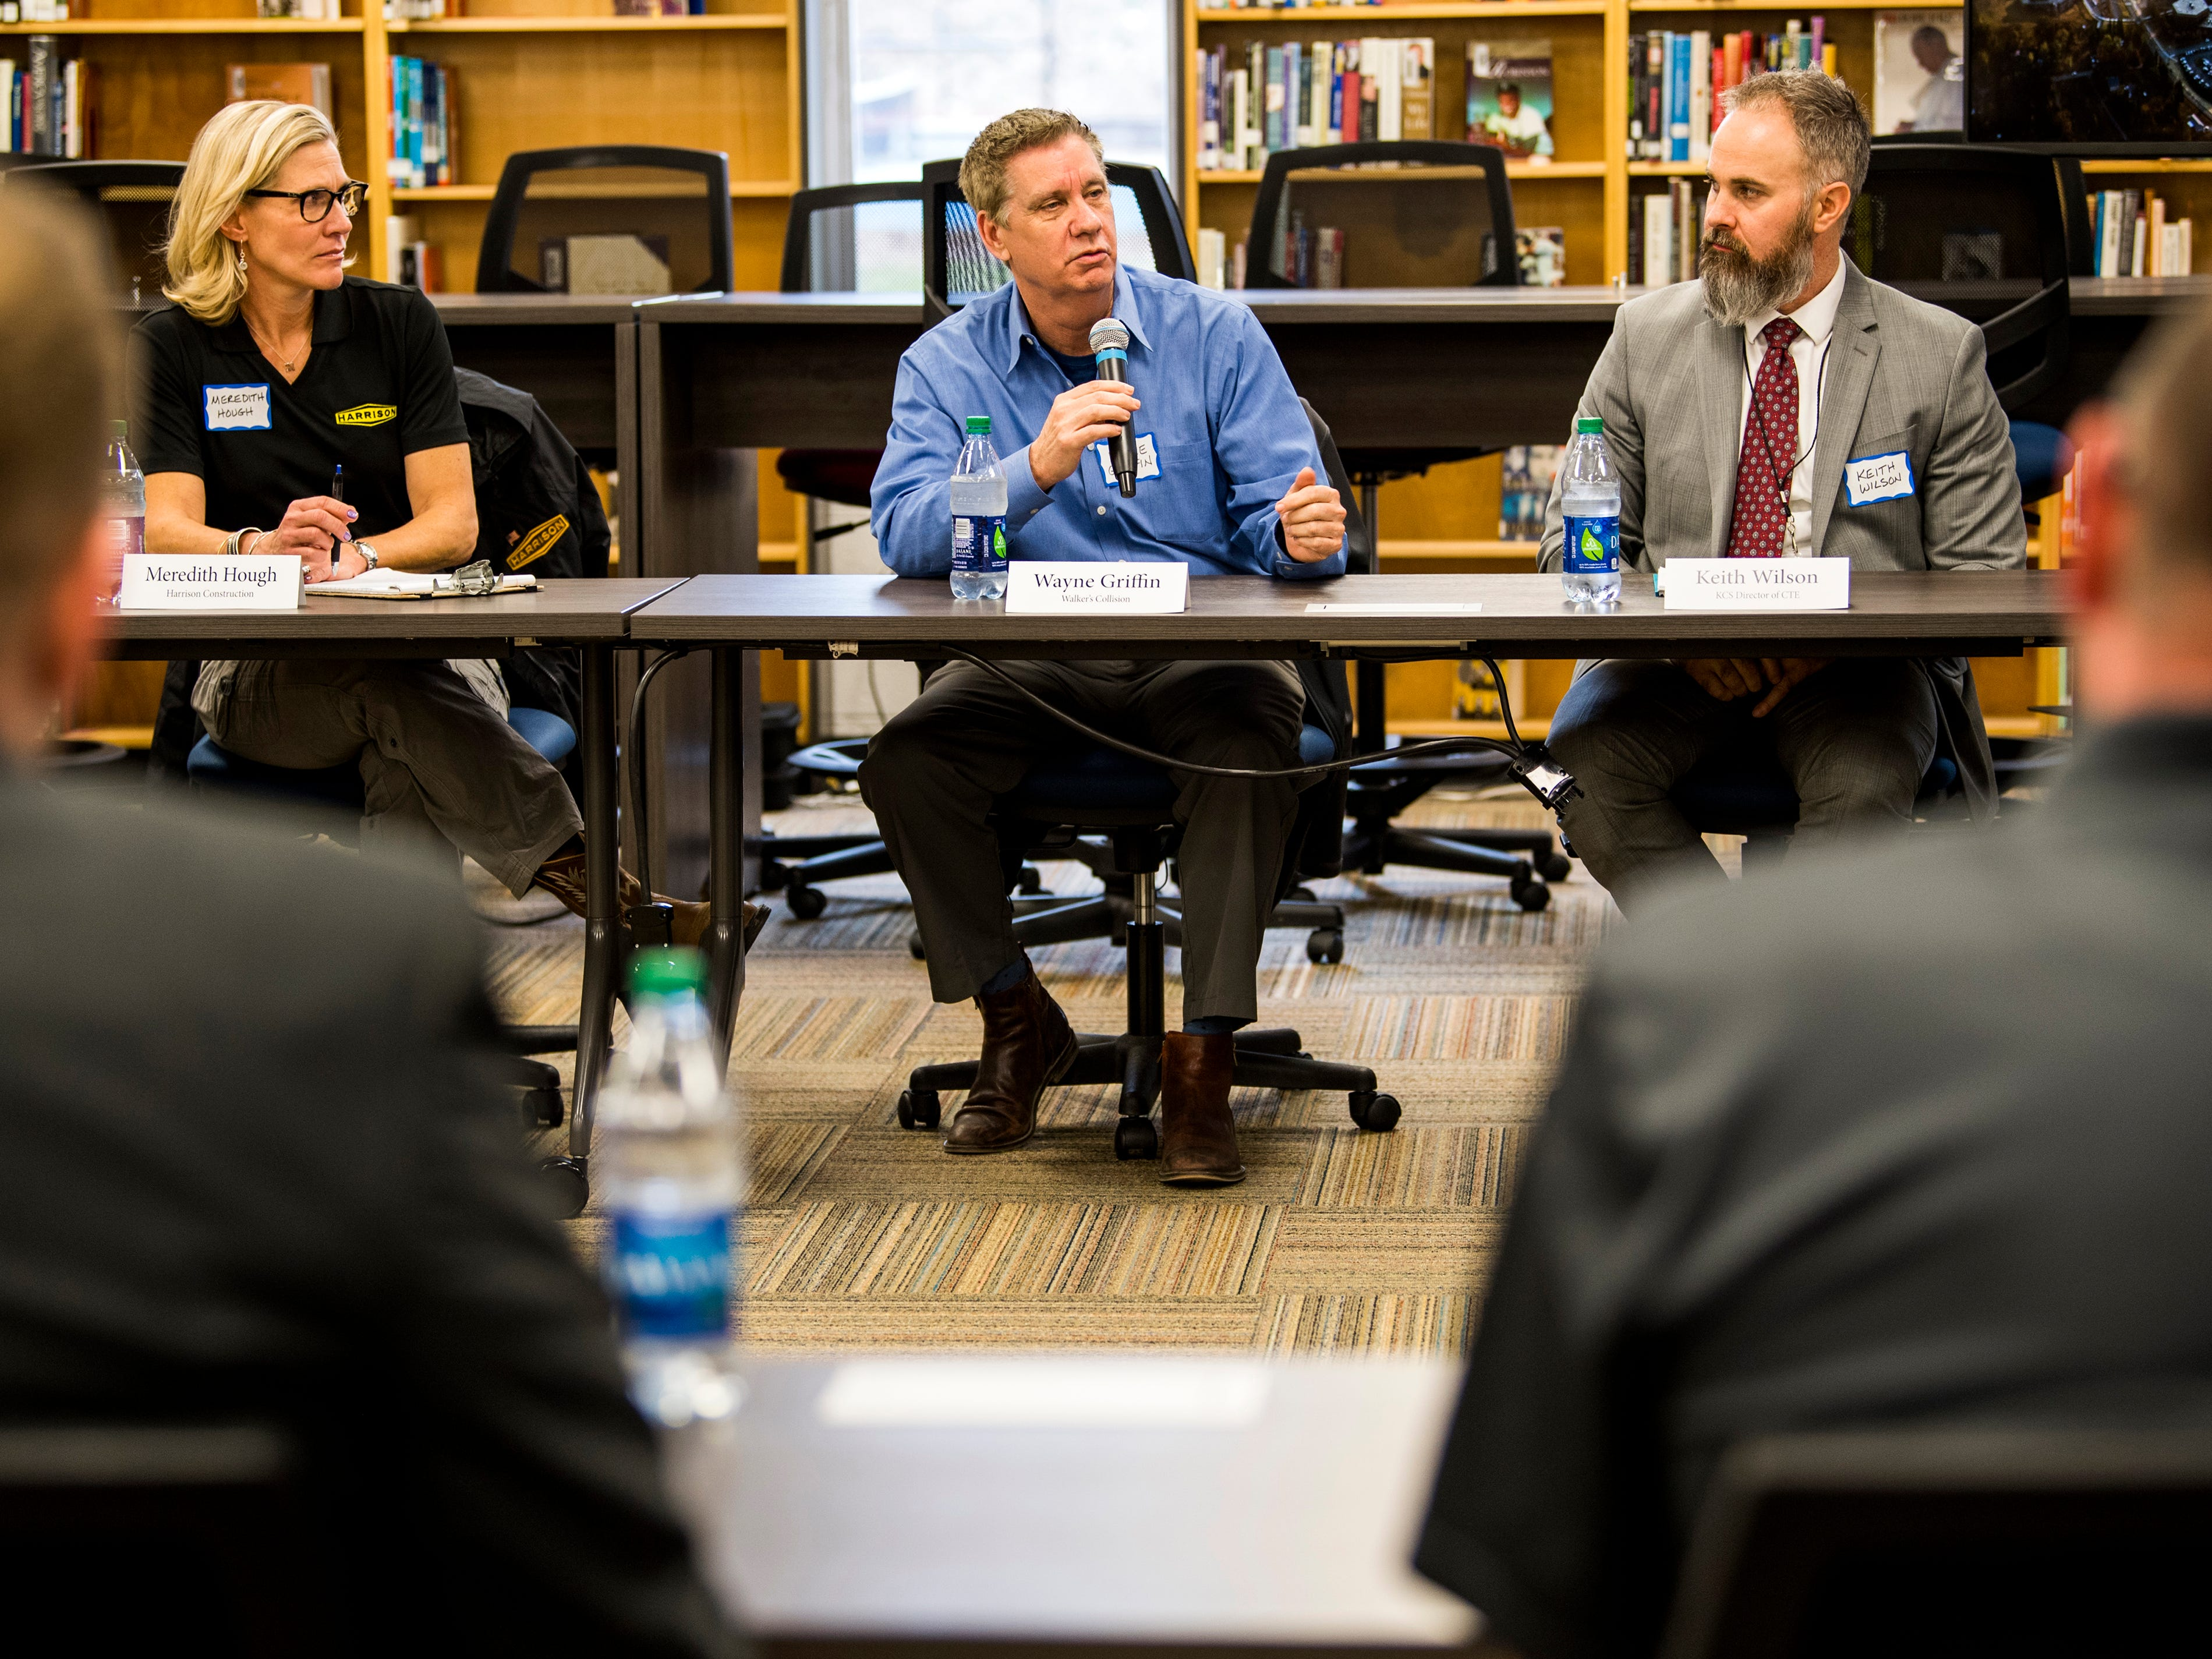 Walker's Collision's Wayne Griffin, center, asks a question during a roundtable event at South-Doyle High in South Knoxville on Friday, February 15, 2019.